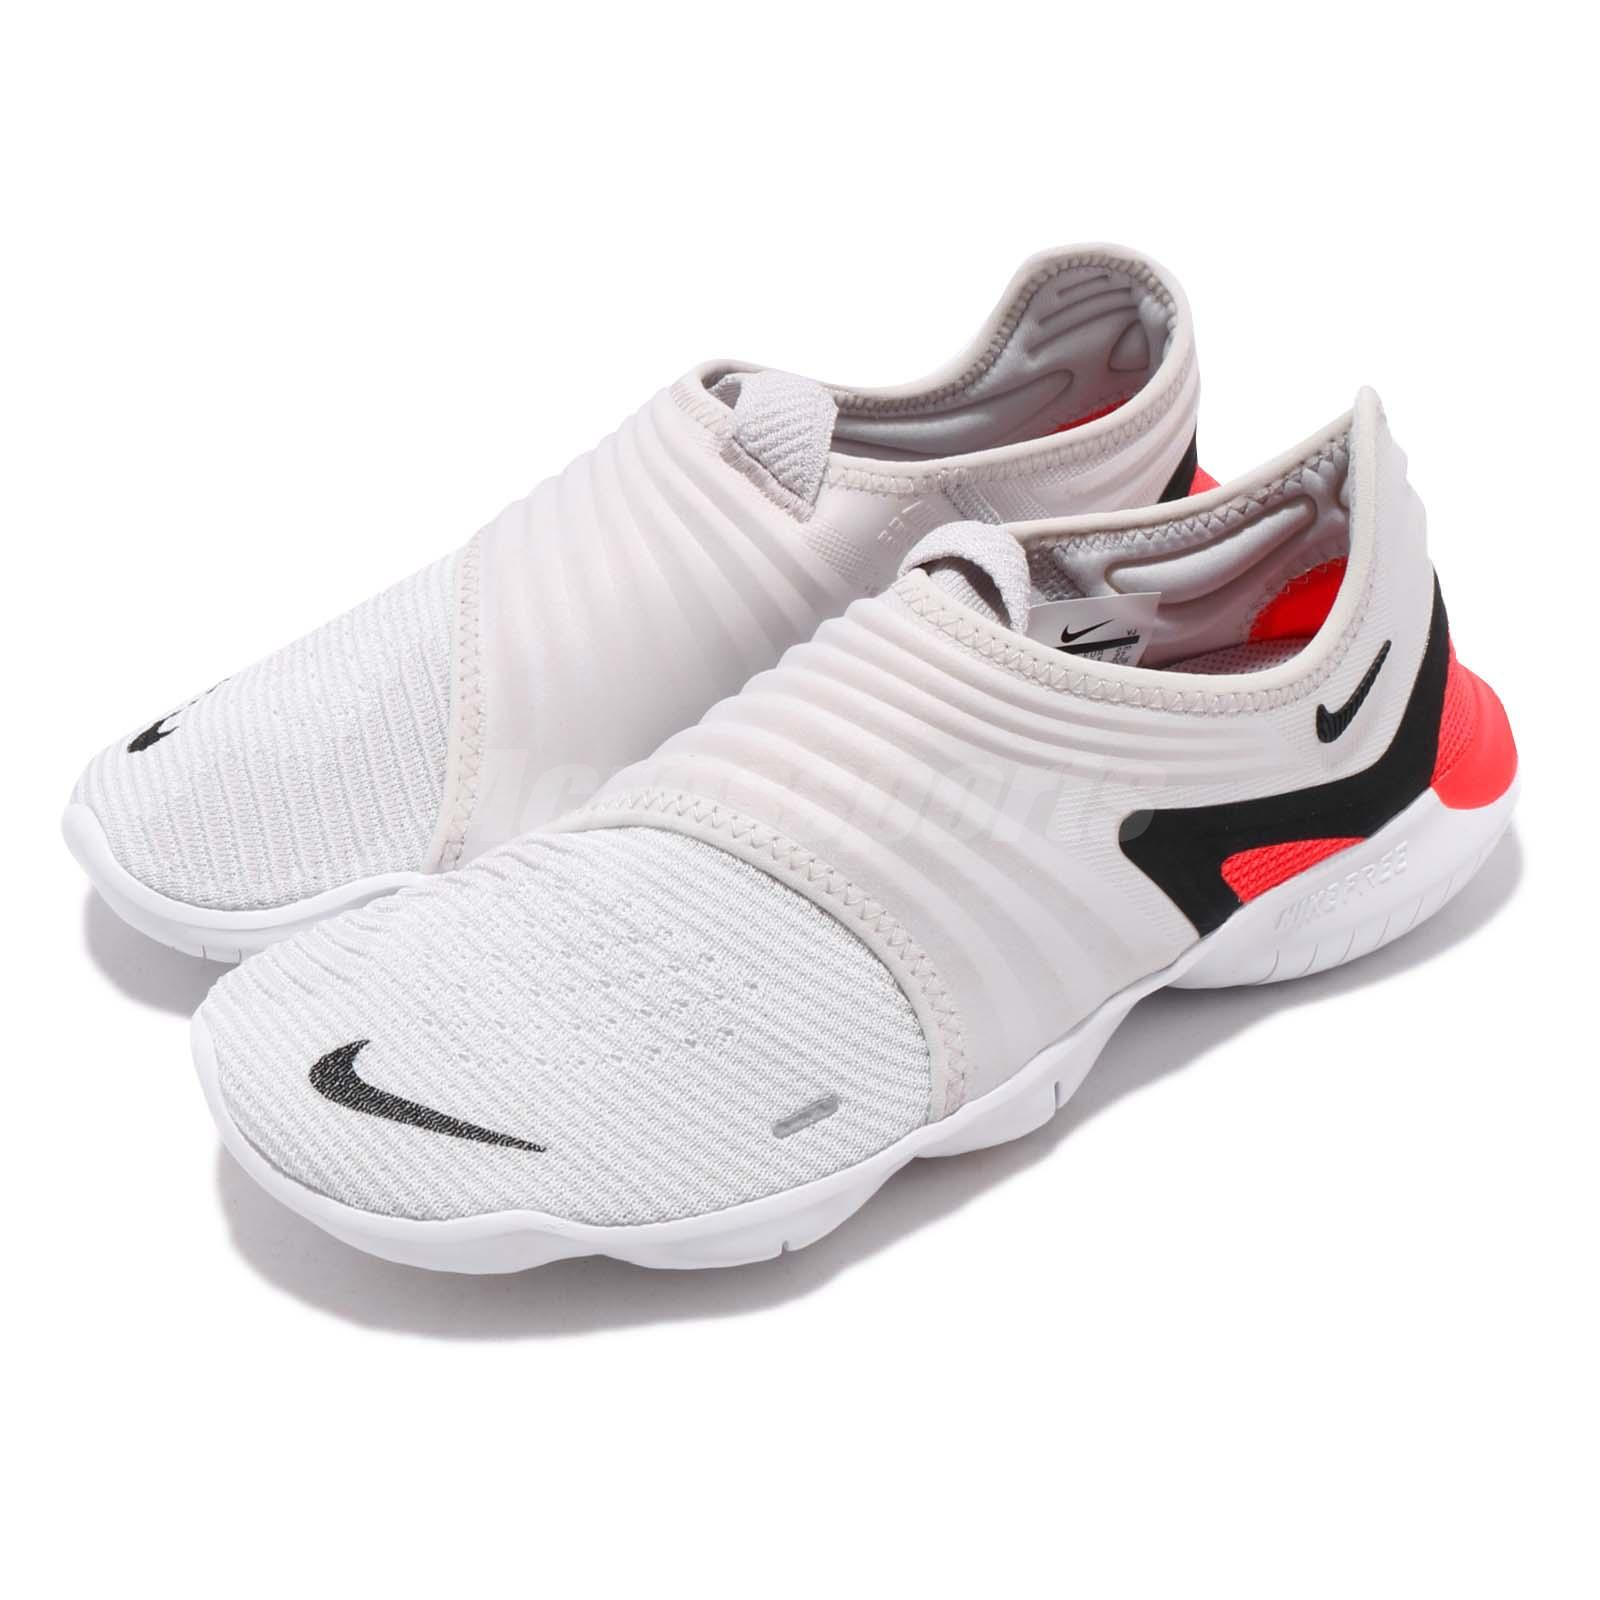 636c50ea49 Details about Nike Free RN Flyknit 3.0 Grey Black White Red Men Running  Shoes AQ5707-002